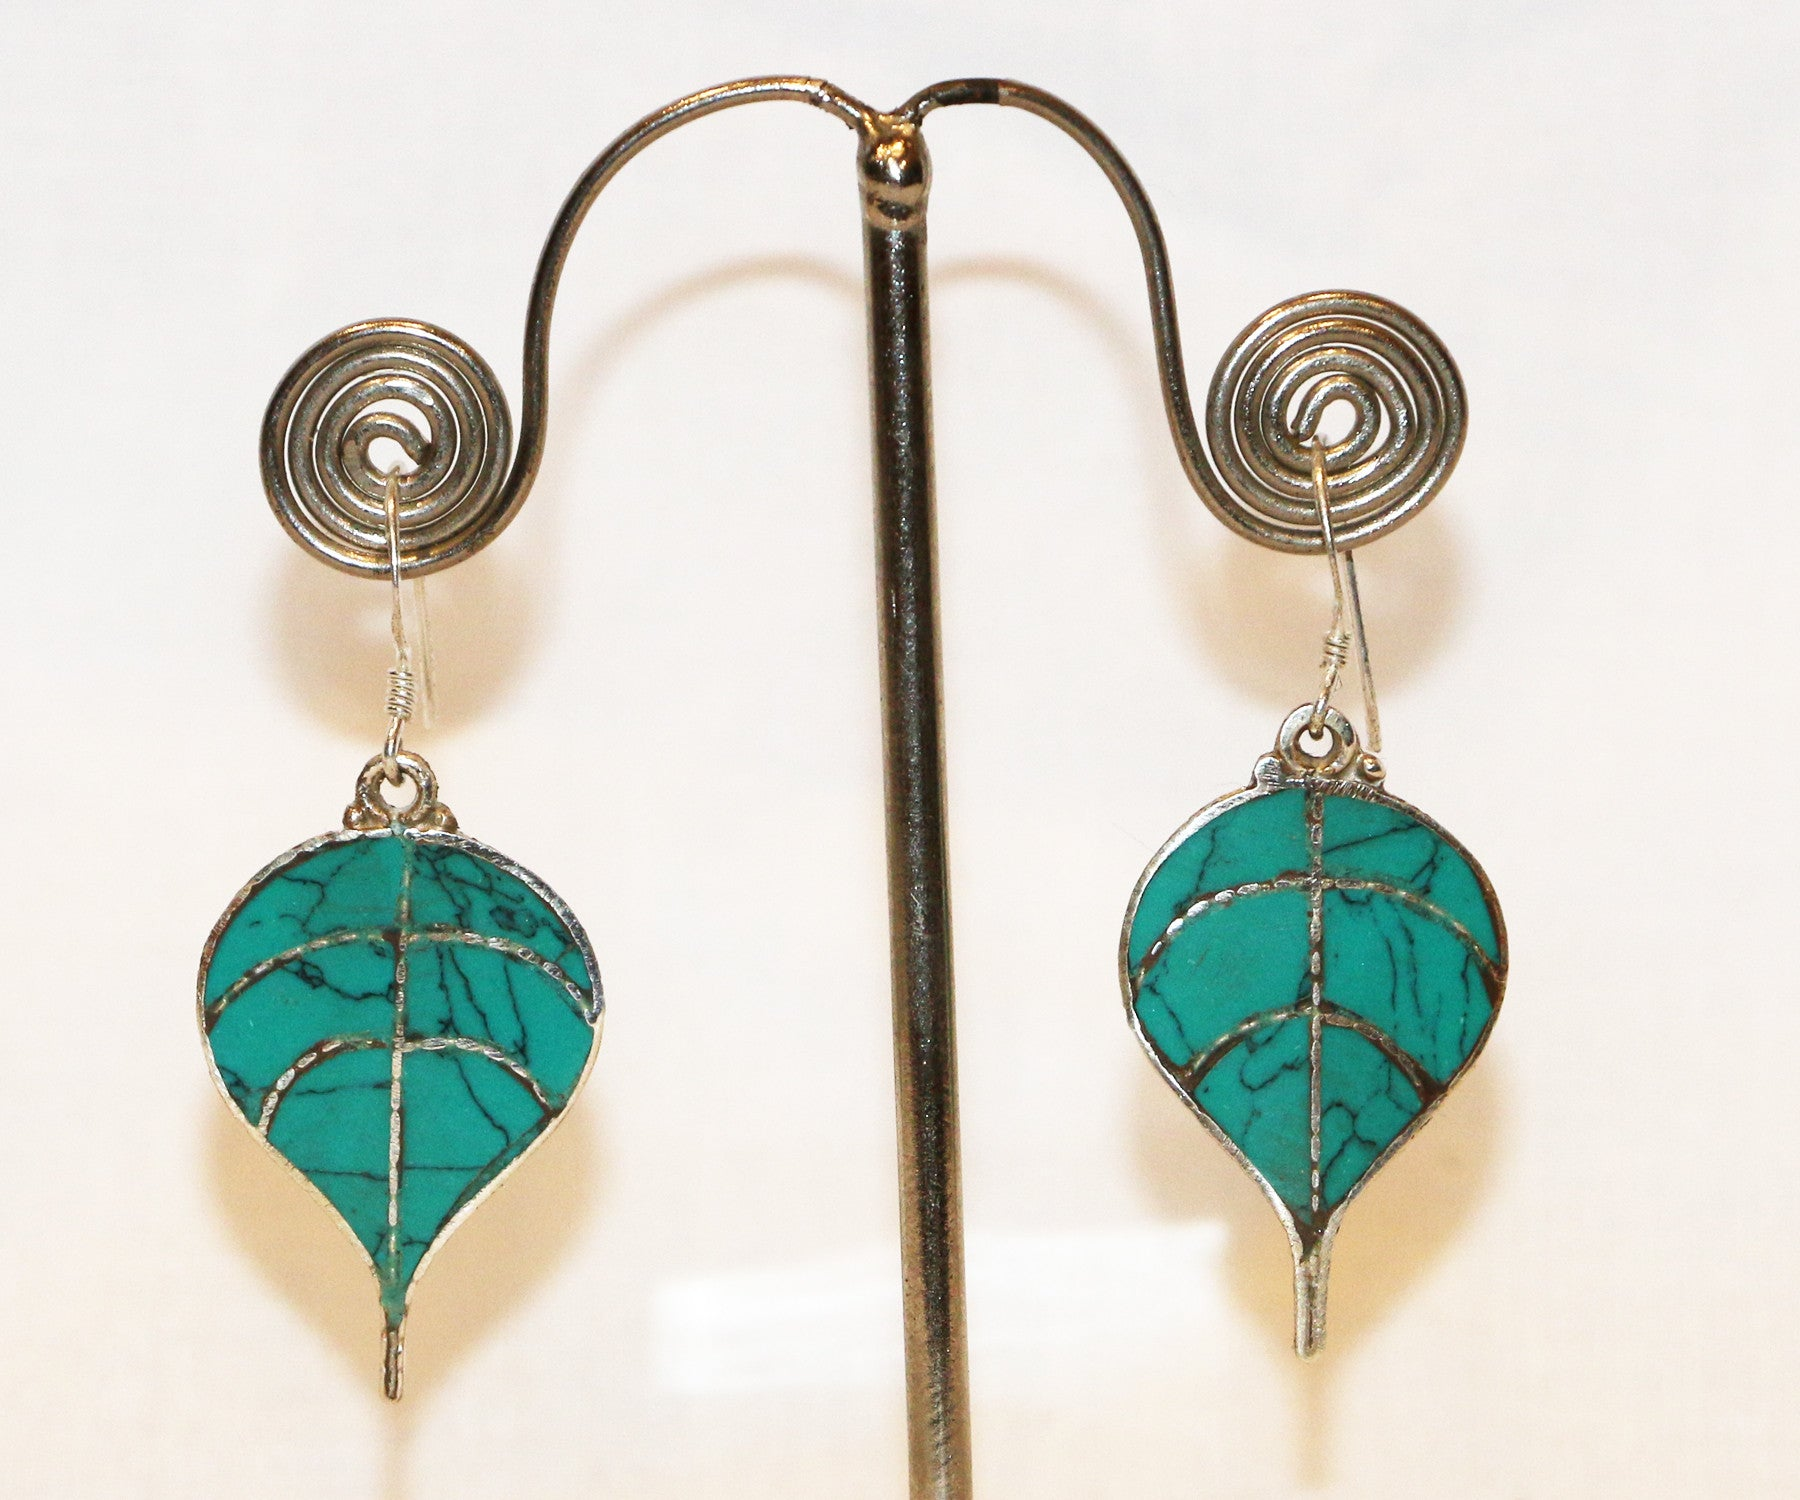 Turquoise Bodhi Leaf Silver Earring - Tibet Arts & Healing